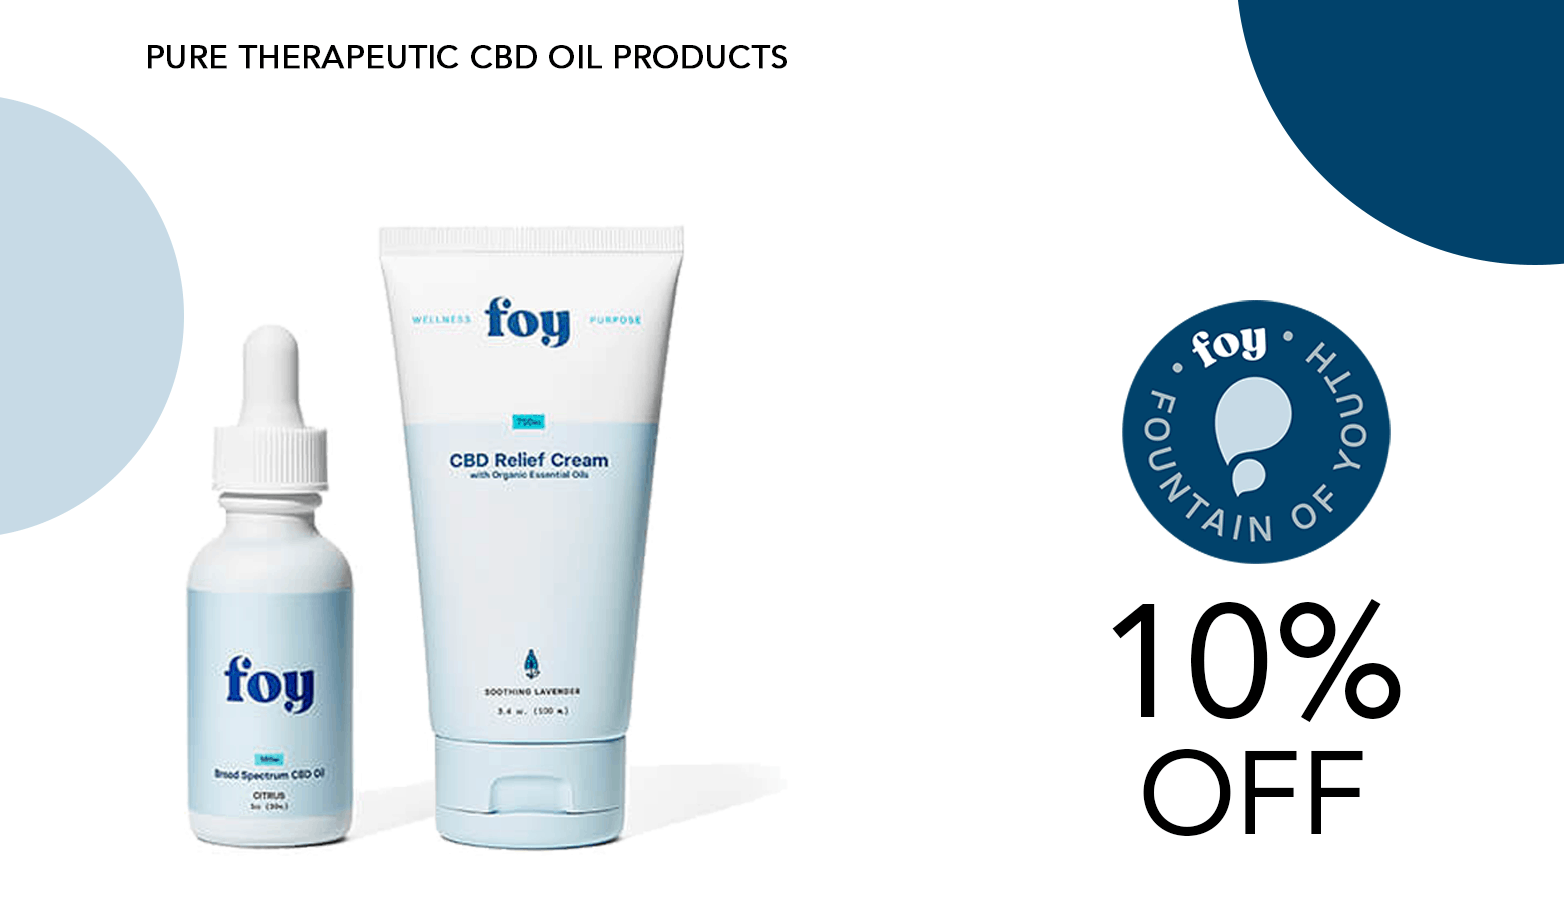 Foy CBD Coupon Code 10 Percent Offer Website